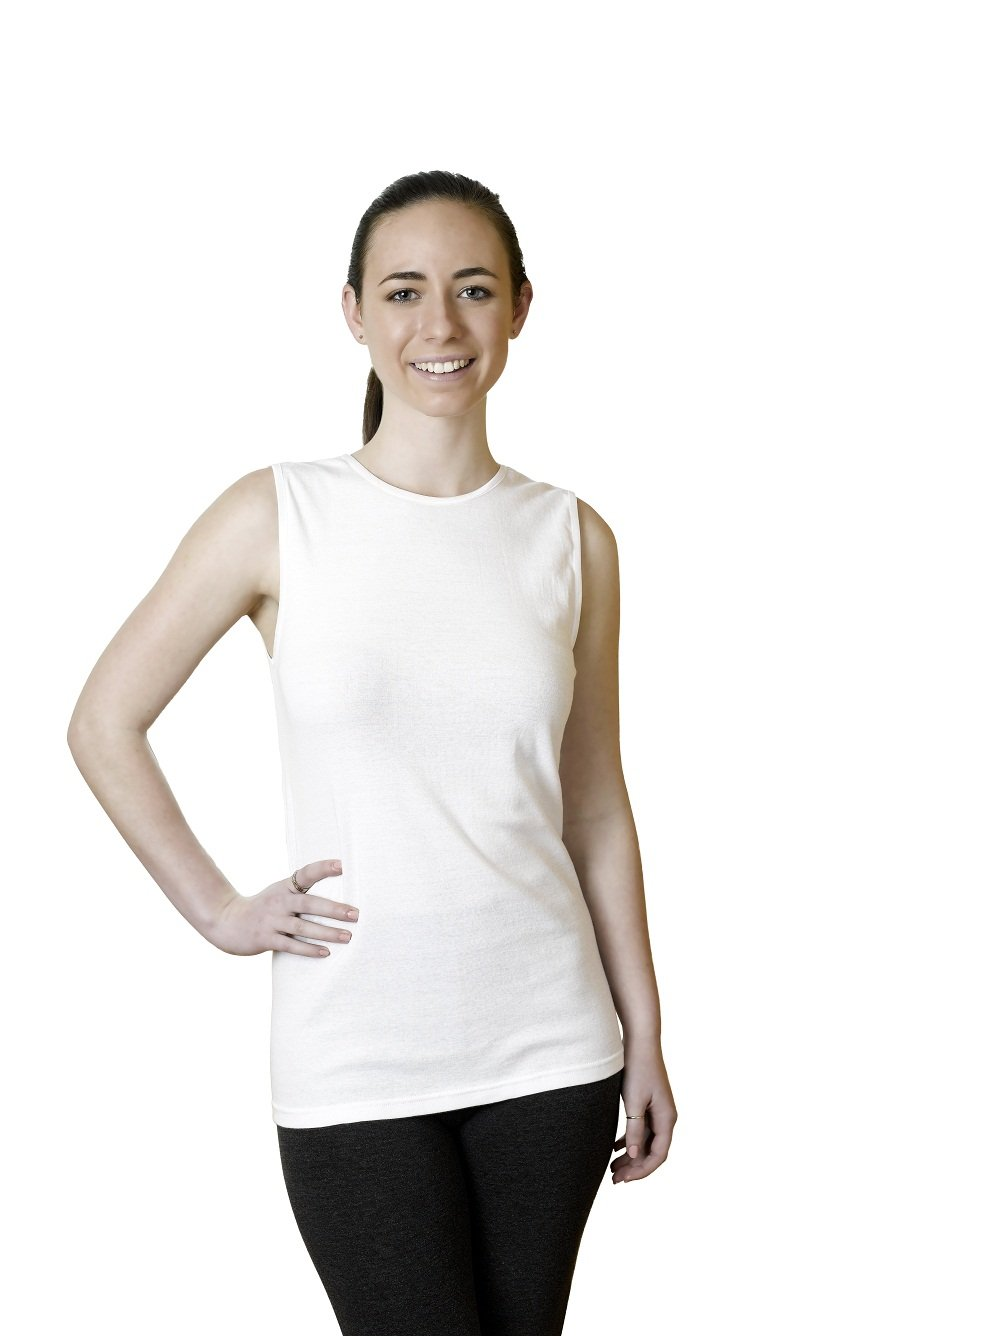 Rosette Women's Sleeveless Undershirt Smooth Seamless RS-9400-BL-L-$P